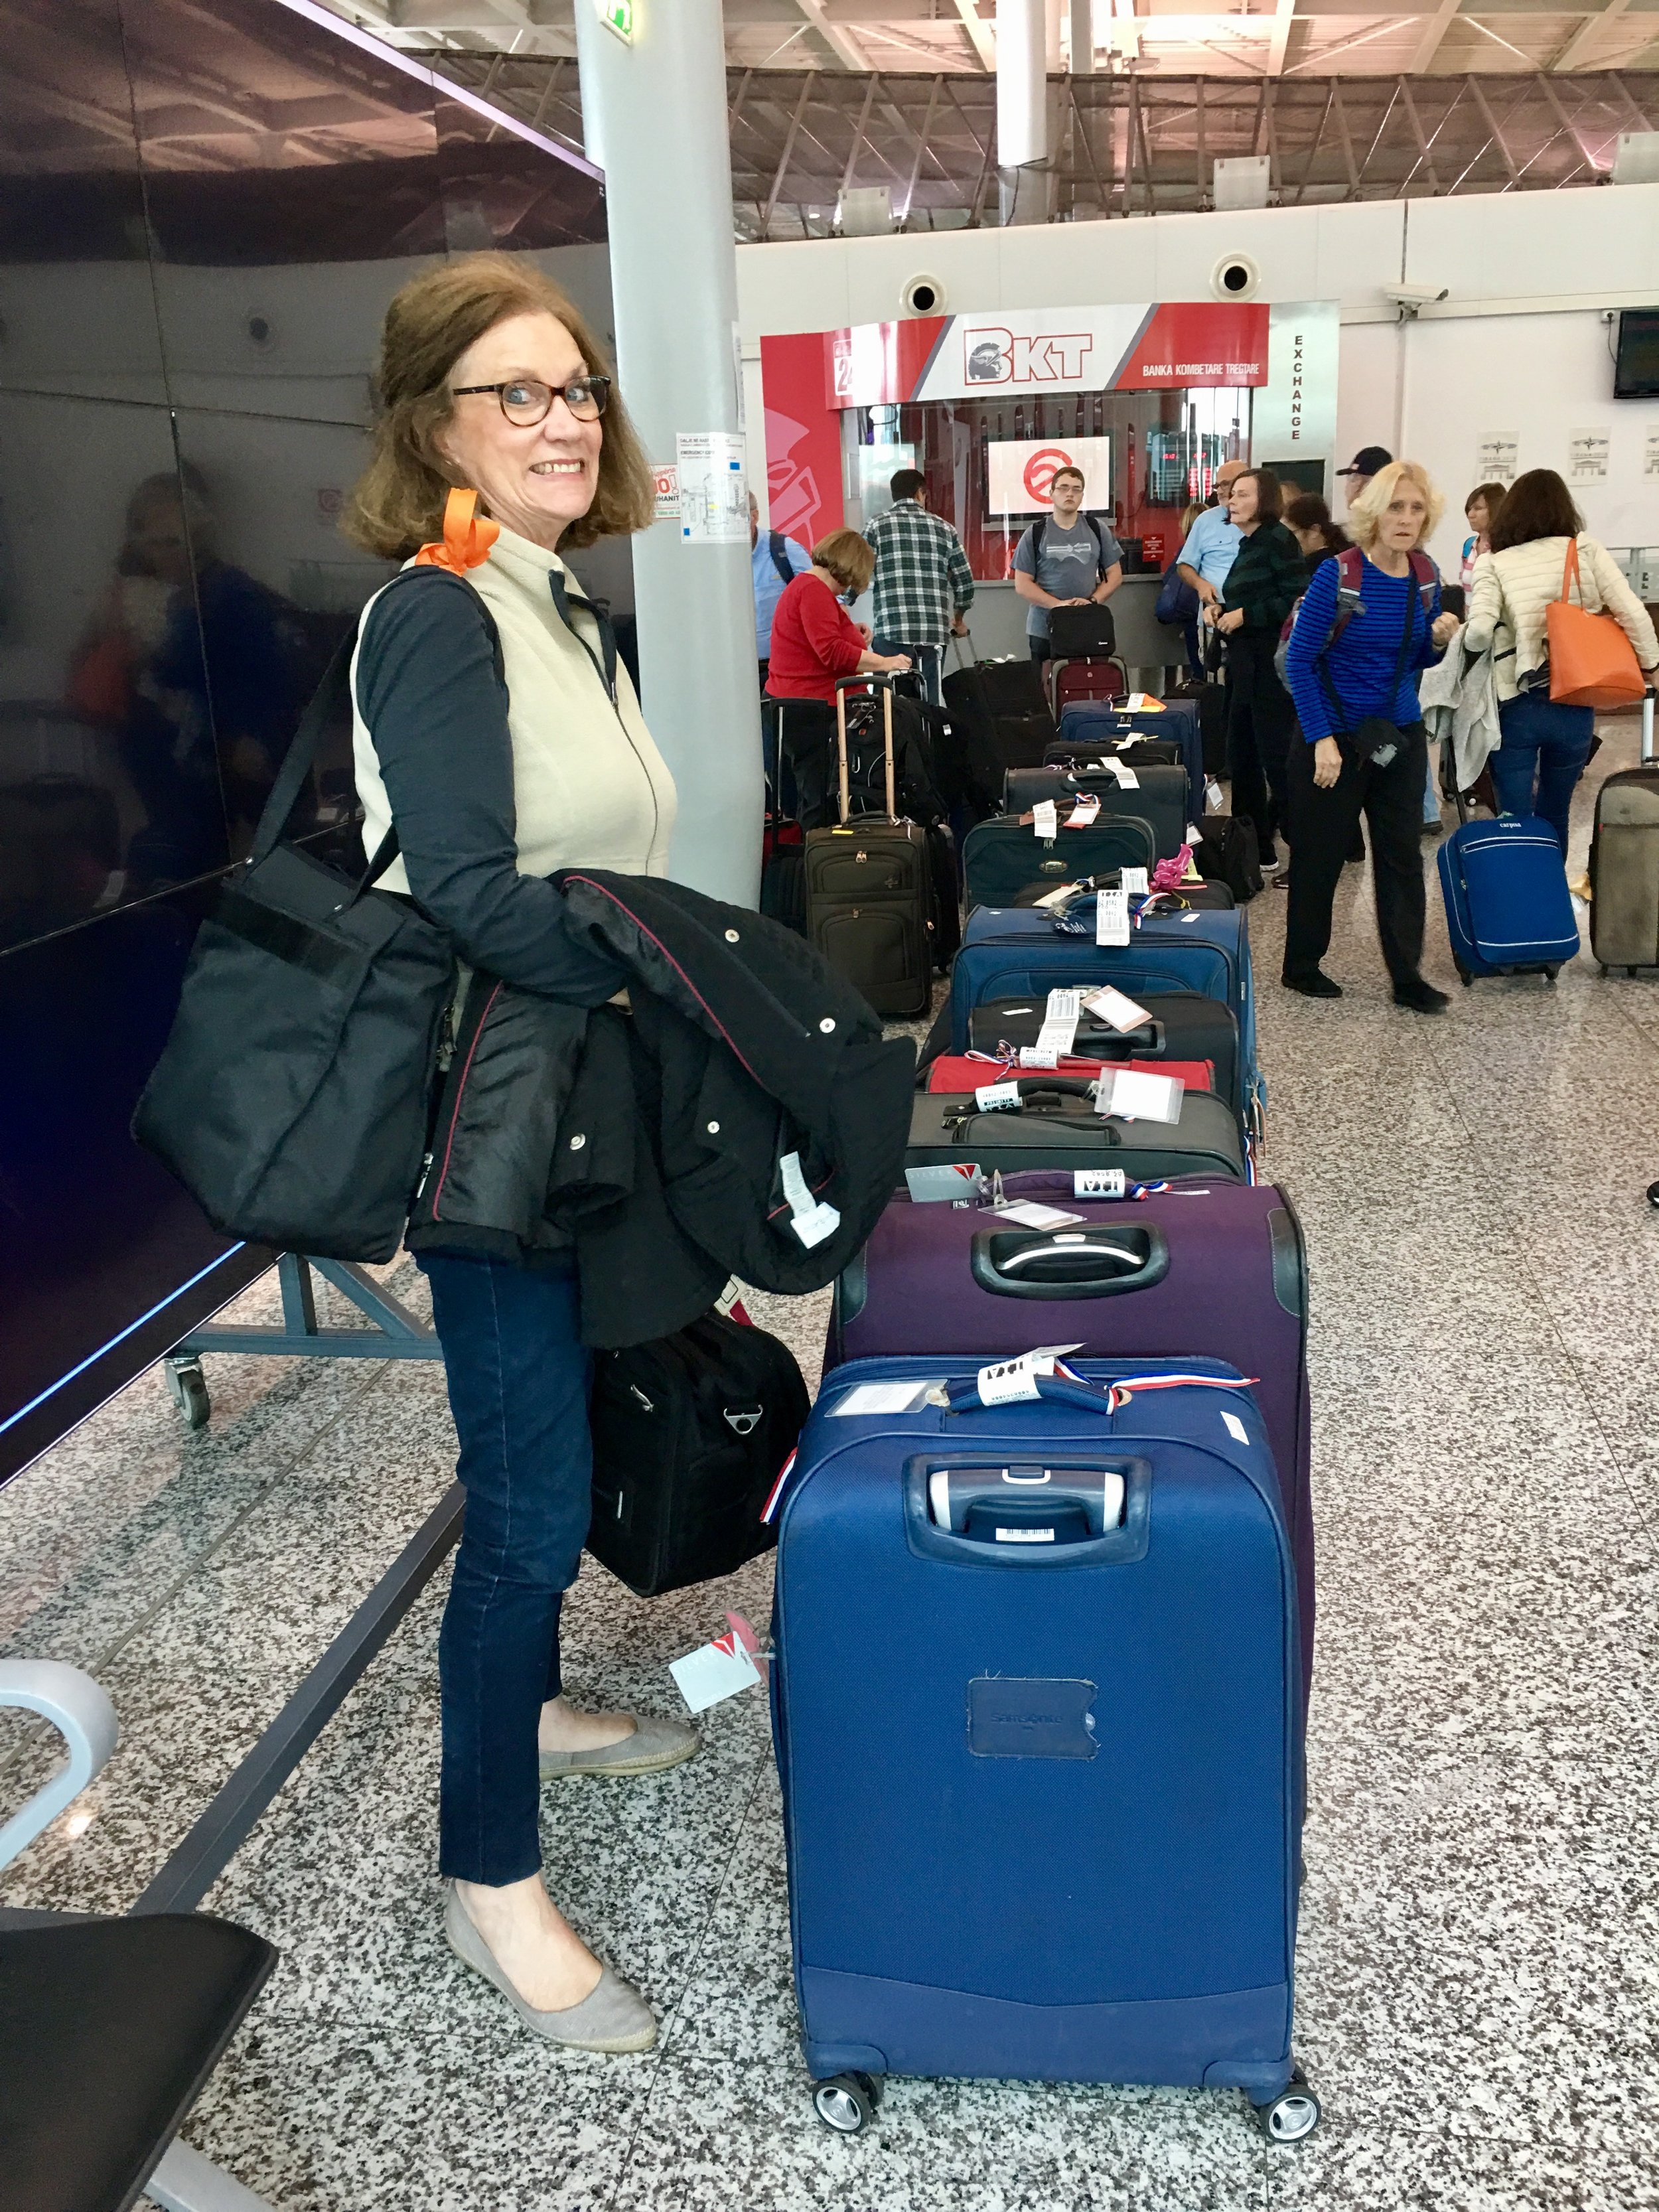 Thanks to Sherry's numbering of each suitcase before we left, we made sure that everything arrived!